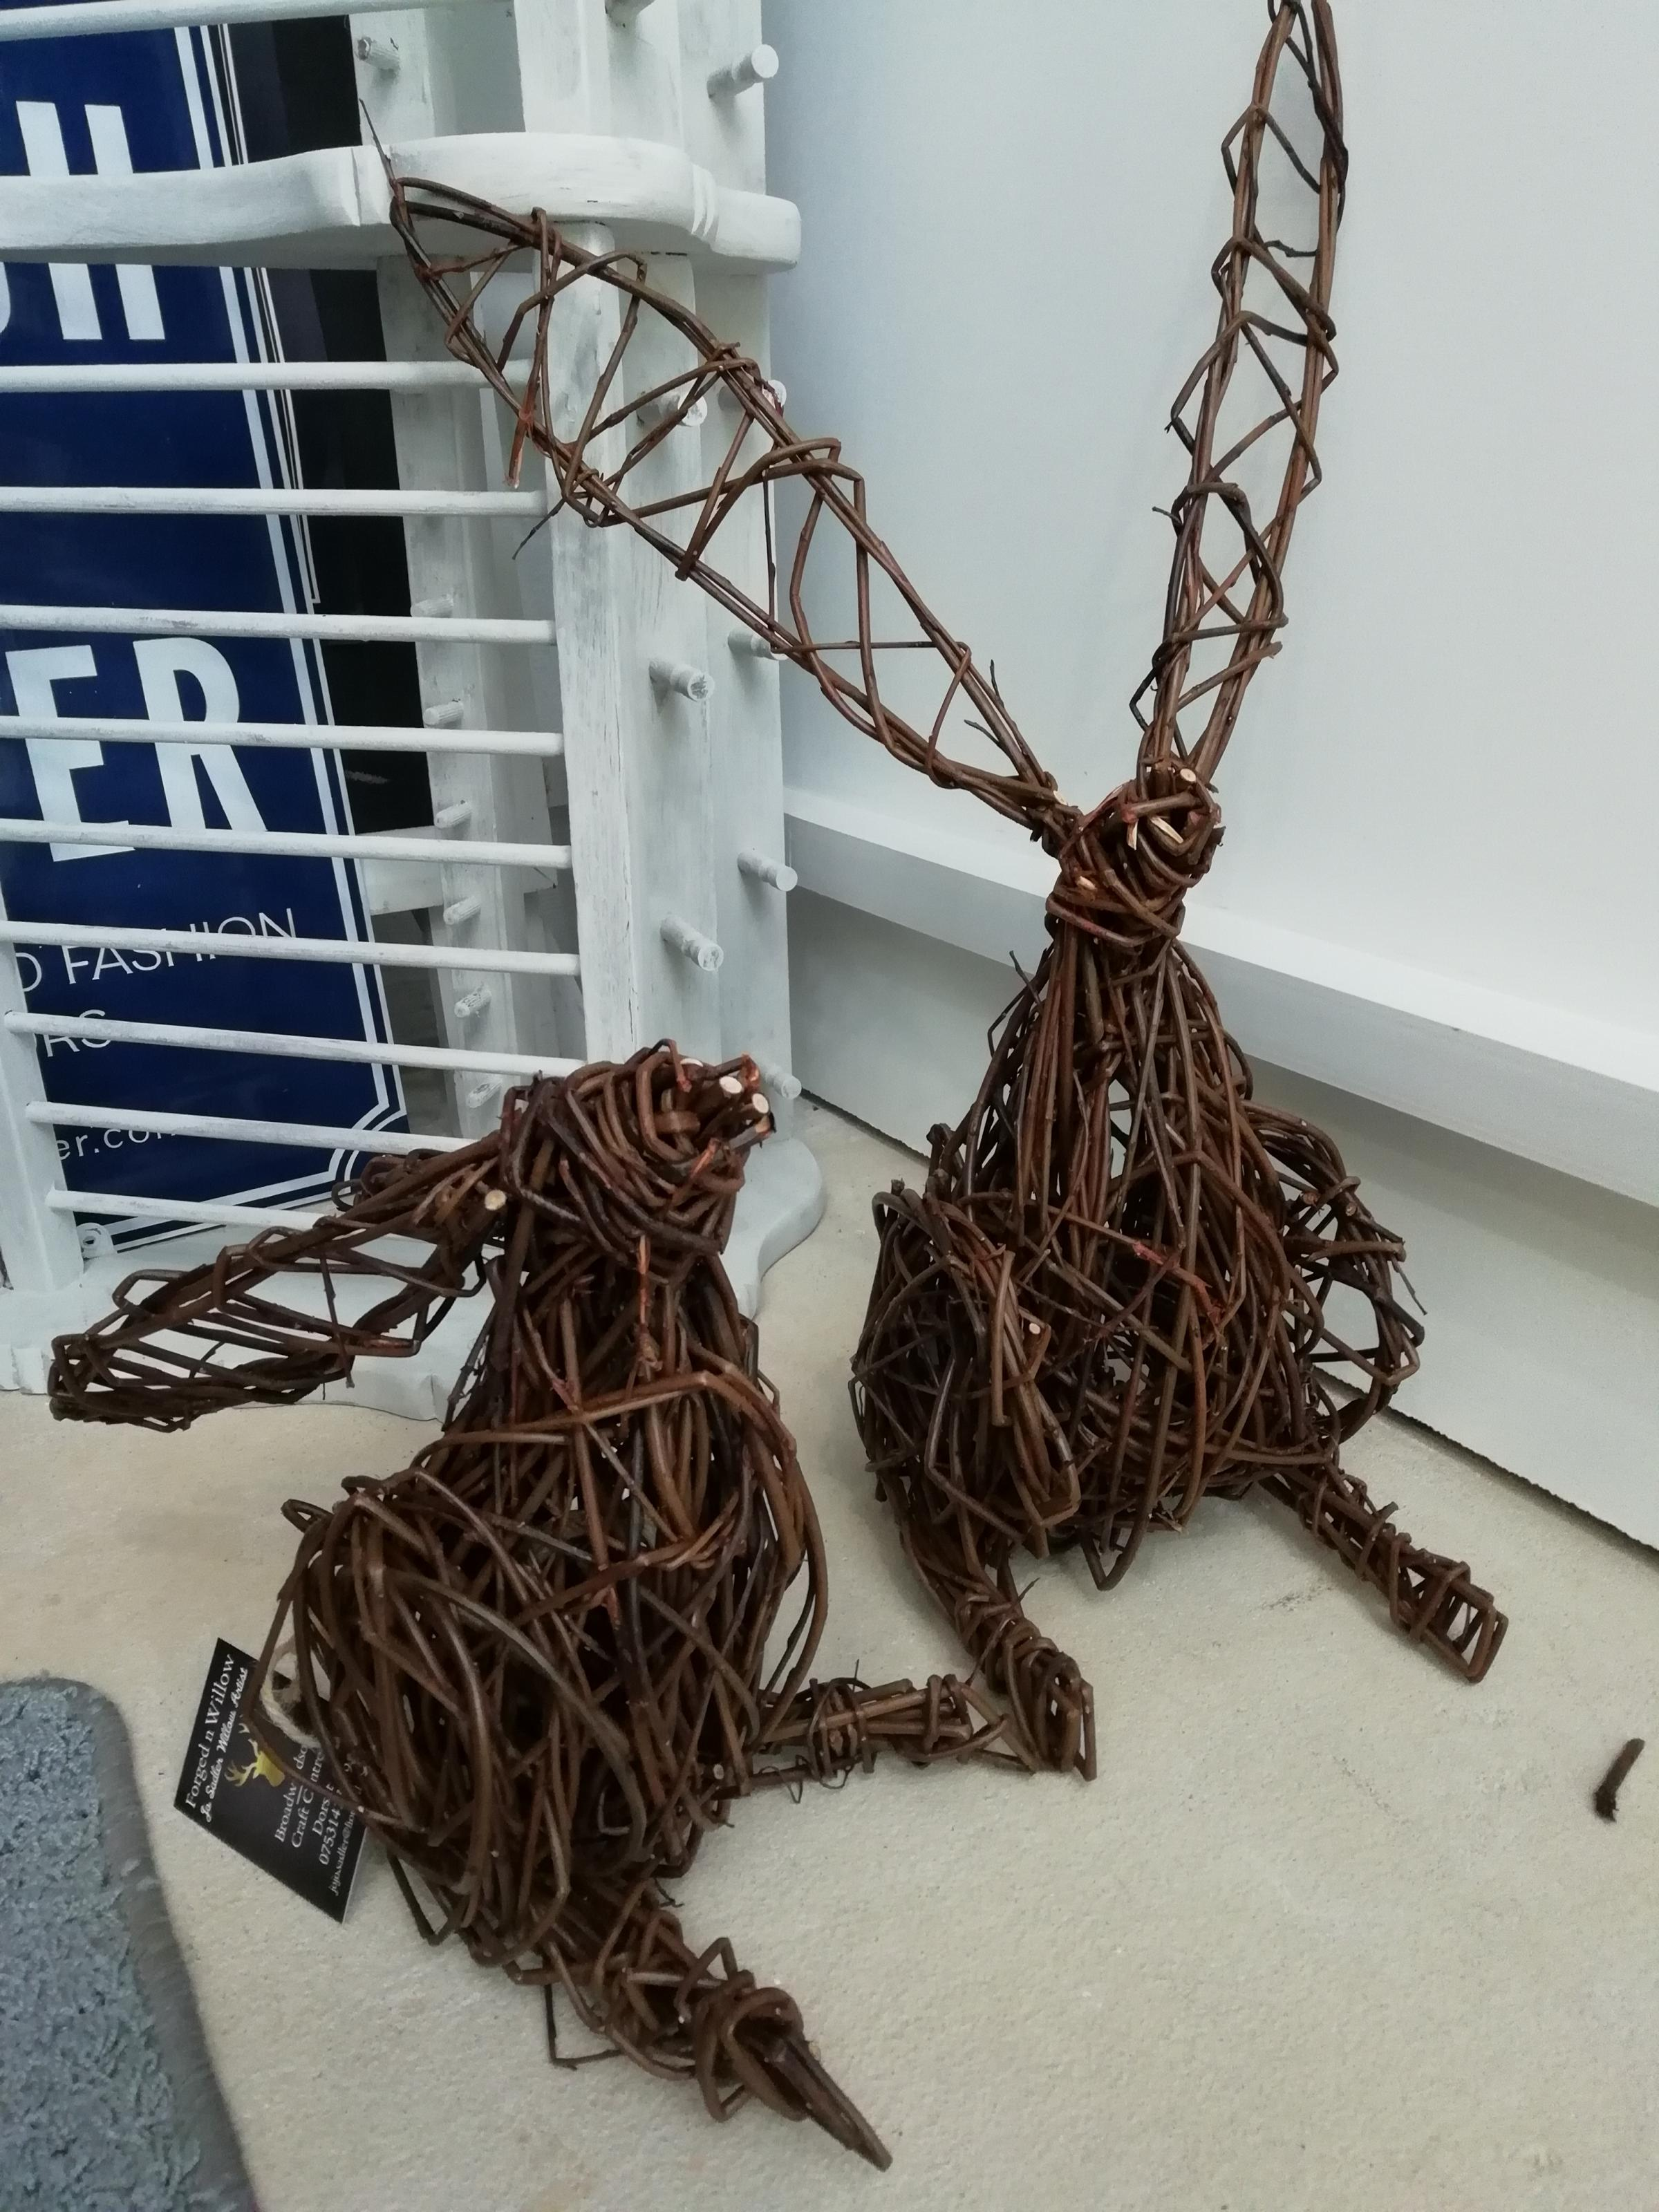 Willow Hare workshop